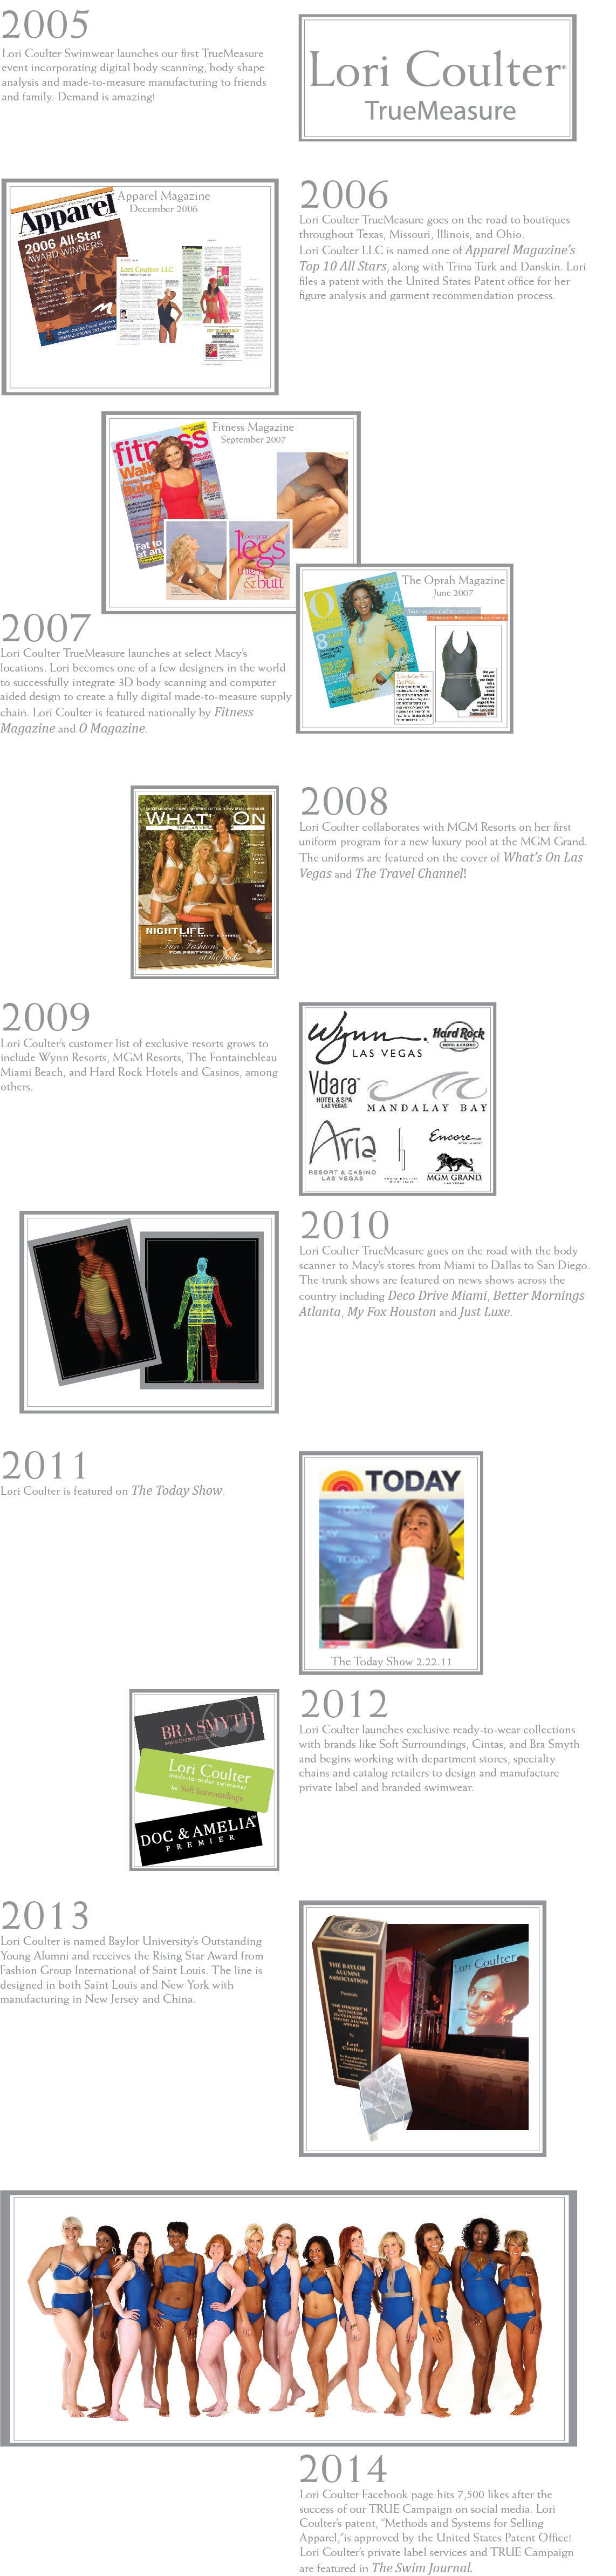 Lori Coulter Company Timeline